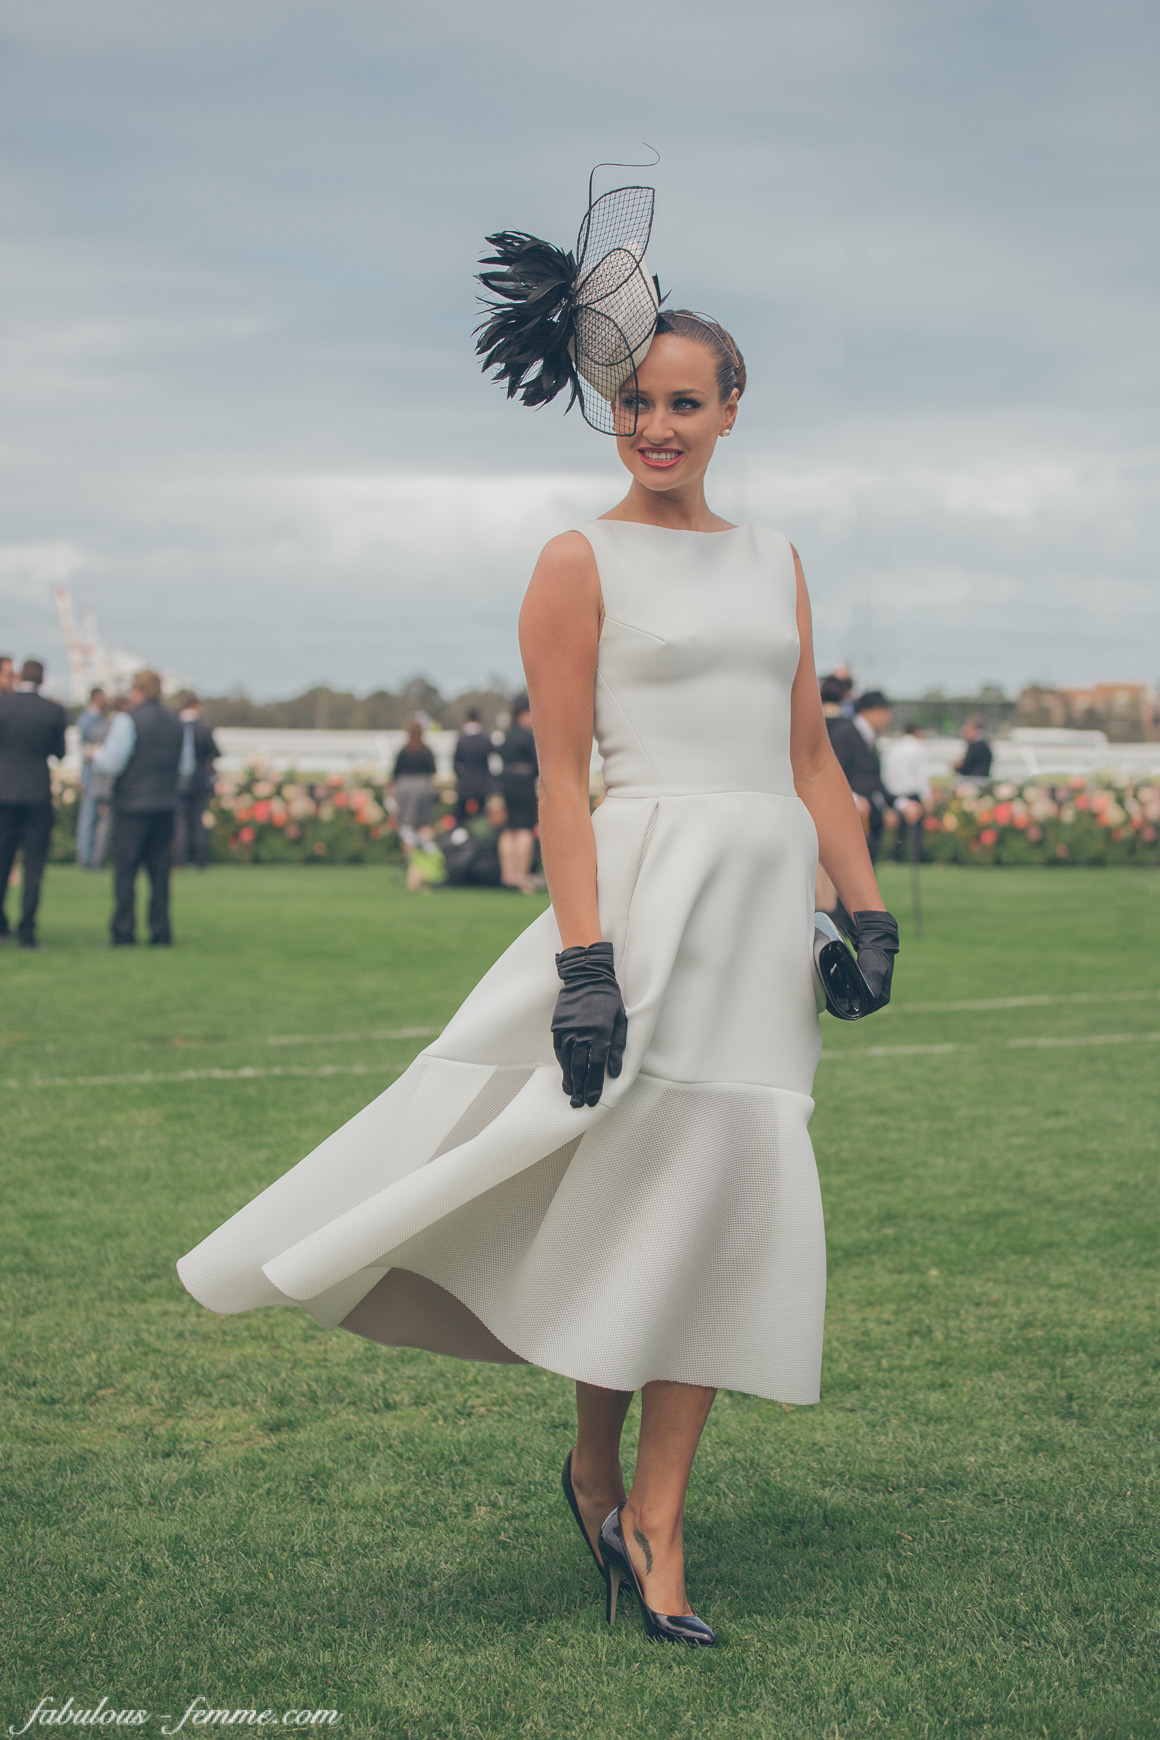 2014 winner of the Fashions on the Field - Oaks Day Victorian Finals - National Final